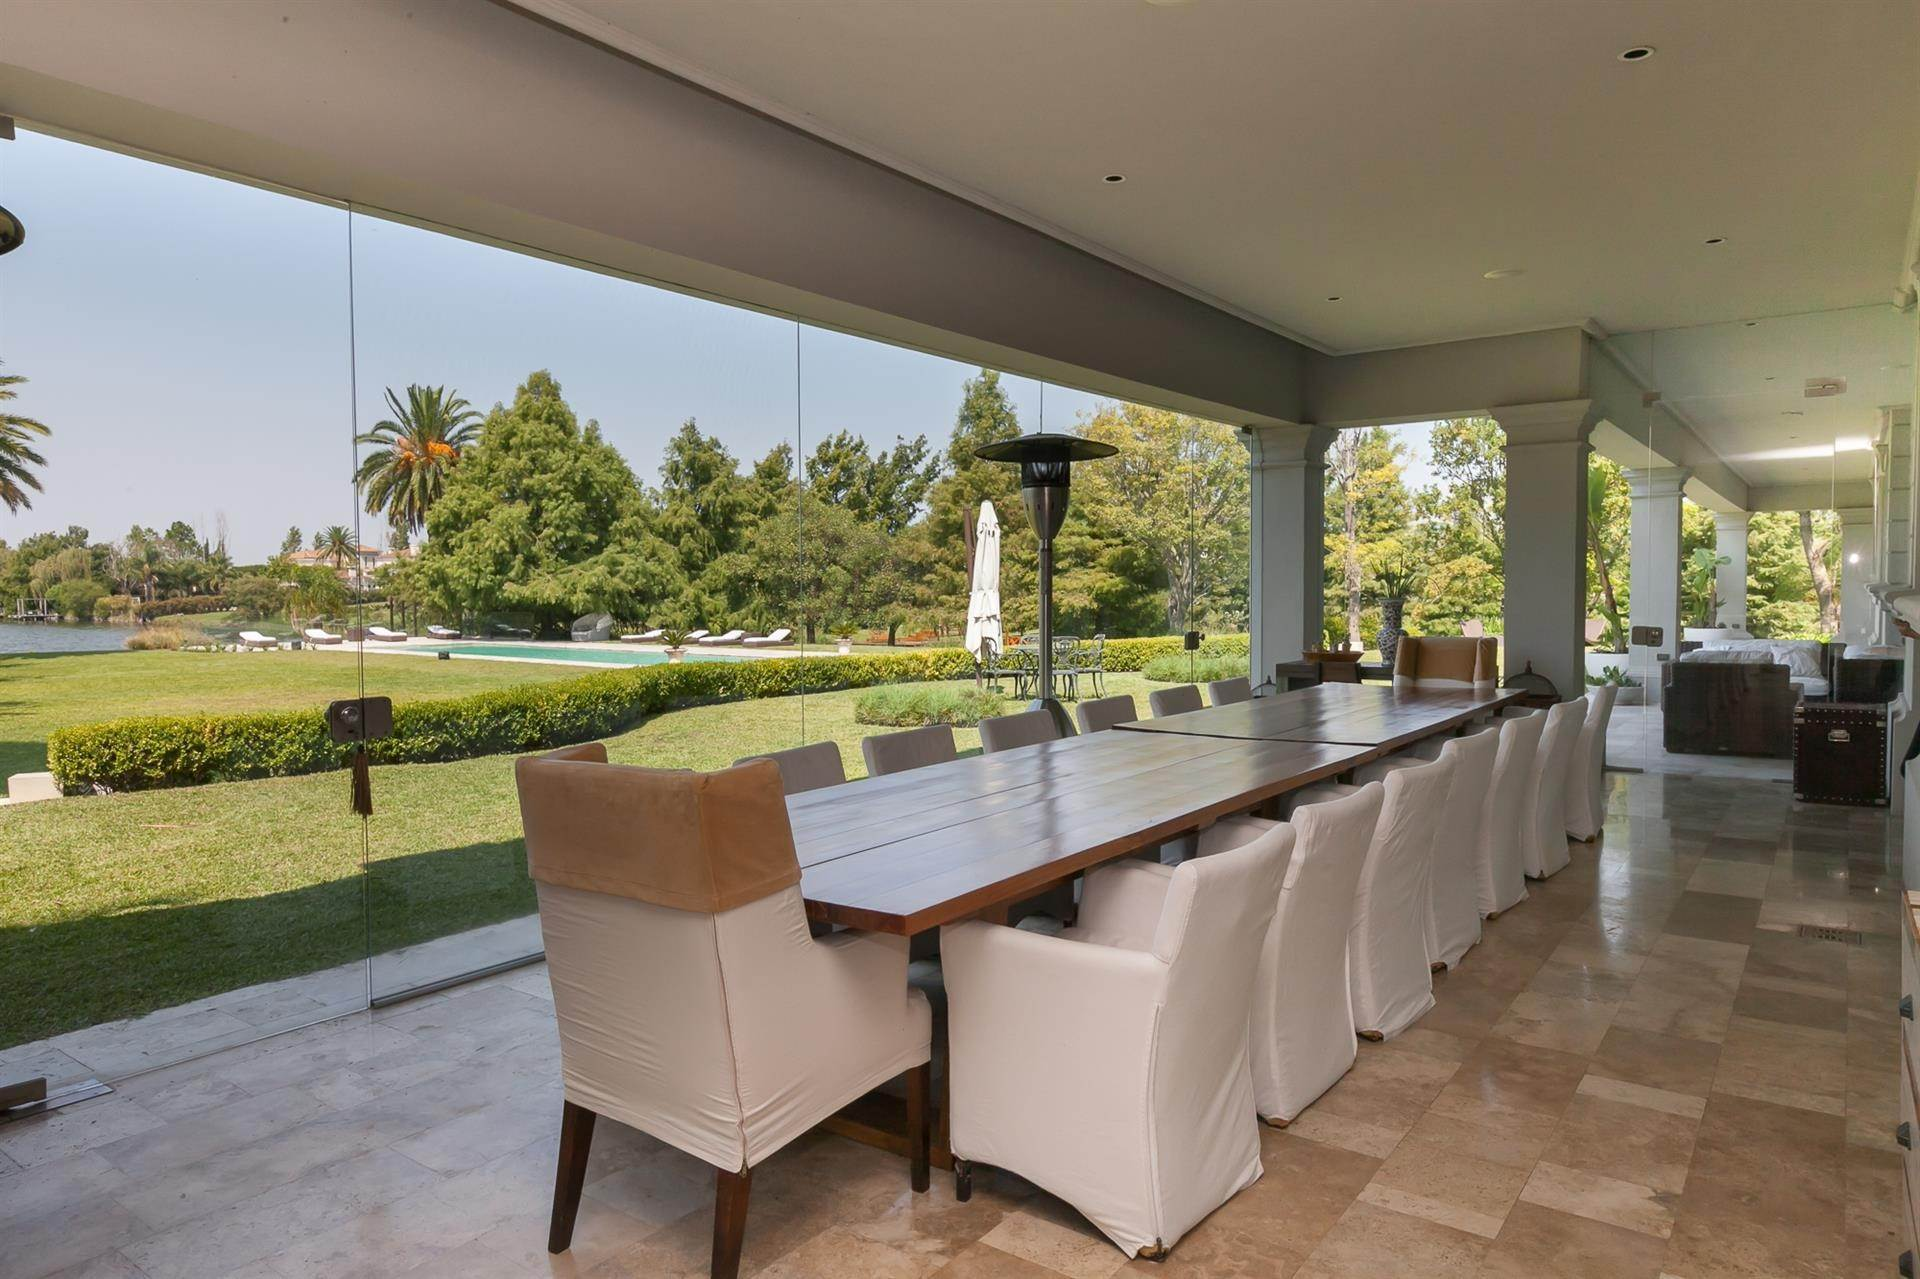 31. Single Family Home for Sale at Incredible house in La Isla, Nordelta Tigre, Argentina